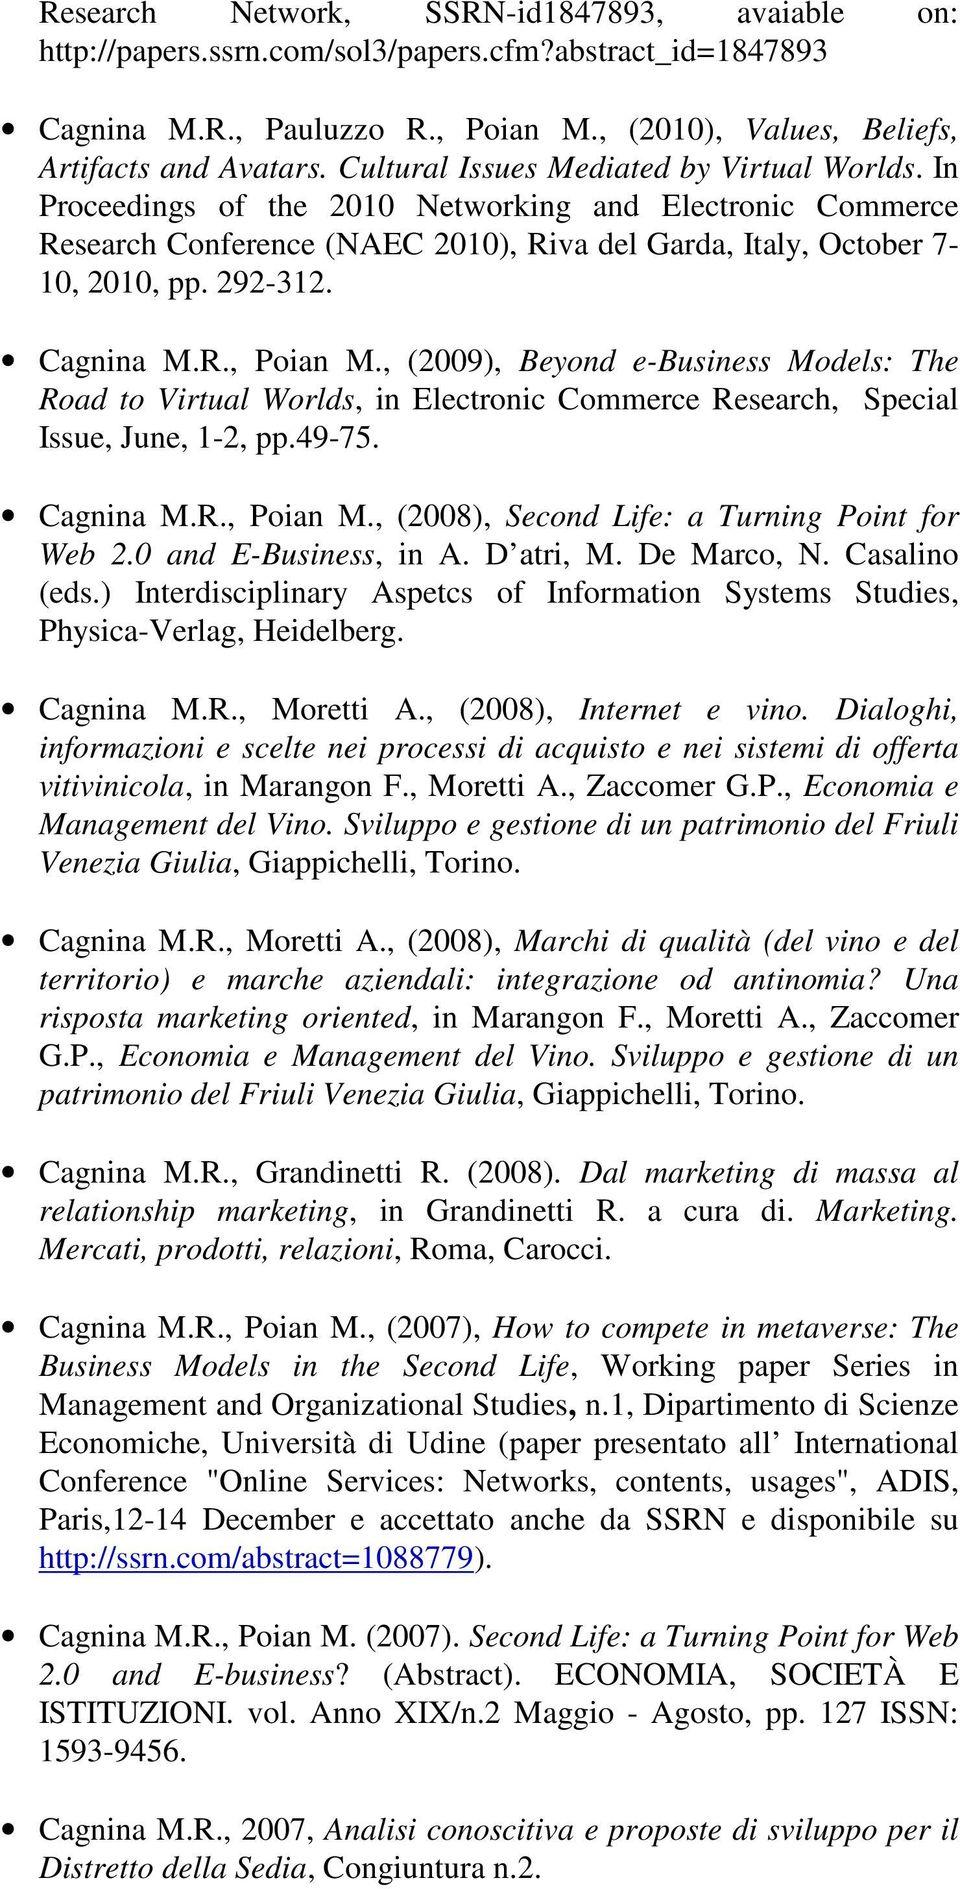 Cagnina M.R., Poian M., (2009), Beyond e-business Models: The Road to Virtual Worlds, in Electronic Commerce Research, Special Issue, June, 1-2, pp.49-75. Cagnina M.R., Poian M., (2008), Second Life: a Turning Point for Web 2.